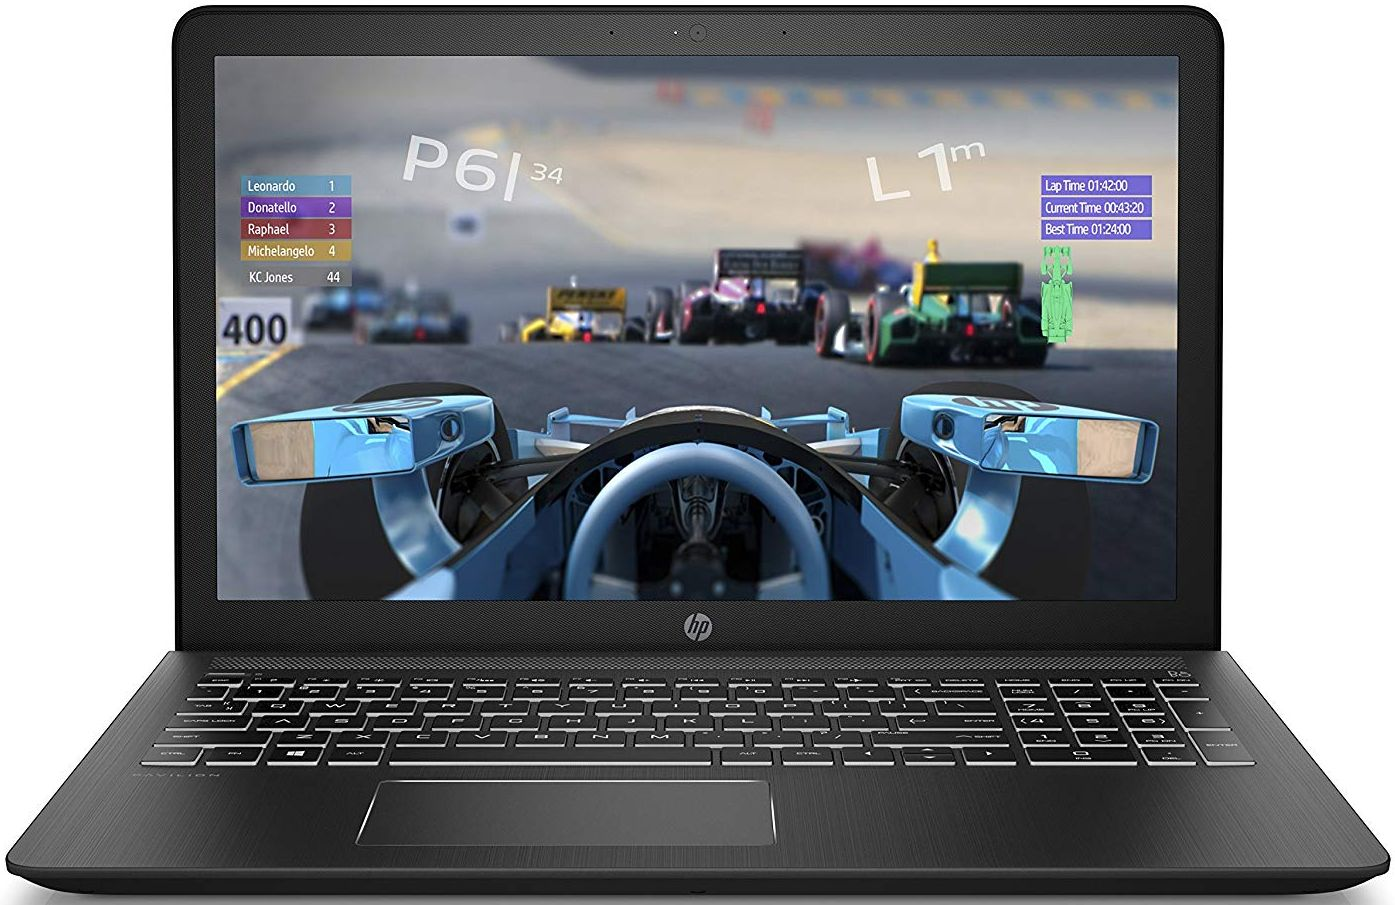 HP Pavilion Power 15 under 1000 best laptop